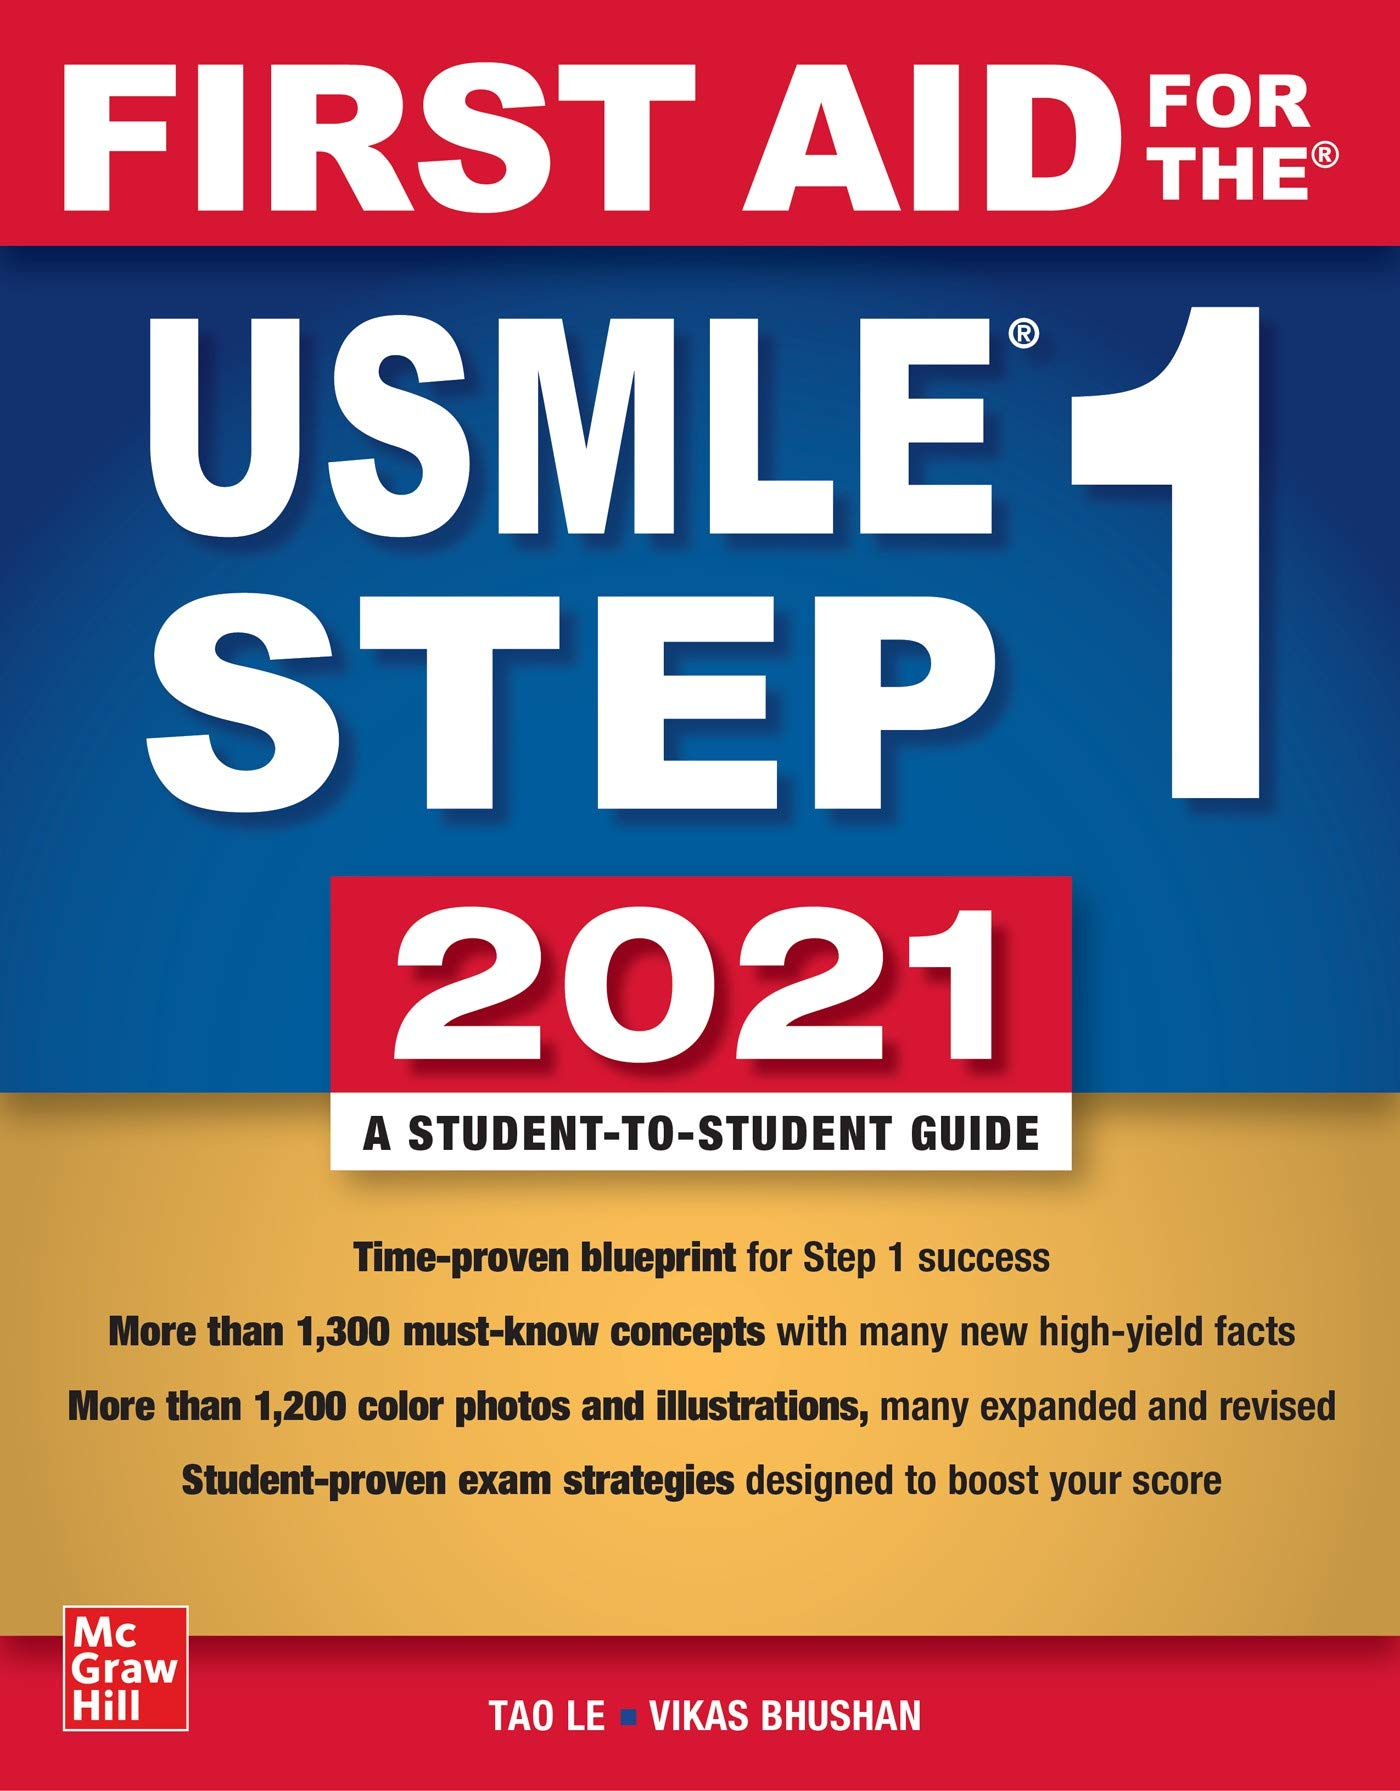 First Aid for the USMLE Step 1 — 2021